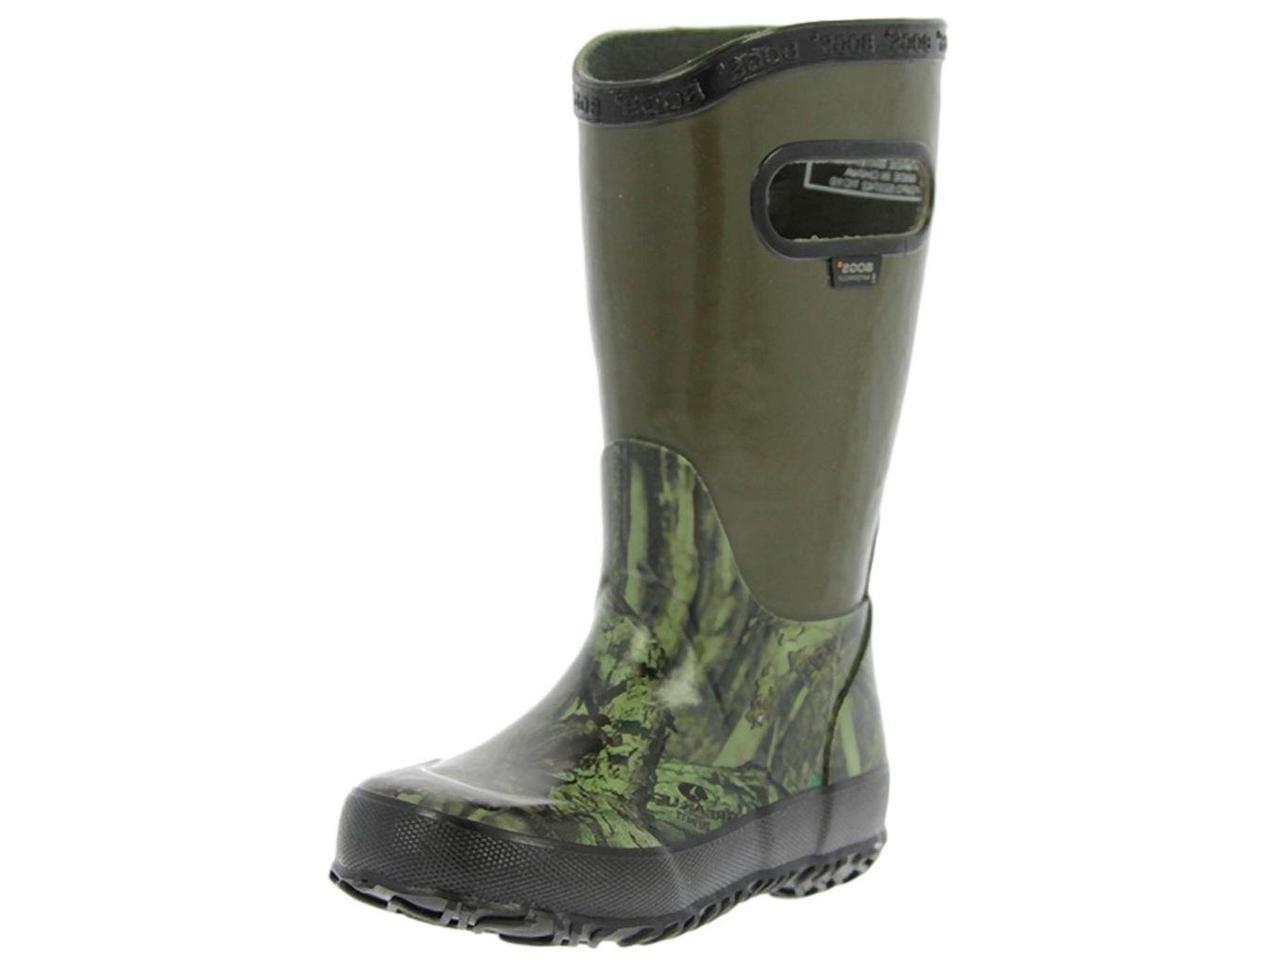 Bogs Hunting Boots Boys Kids Rainboot Hunting Bogs WP 2 Child Mossy Oak 71742 3c3a93